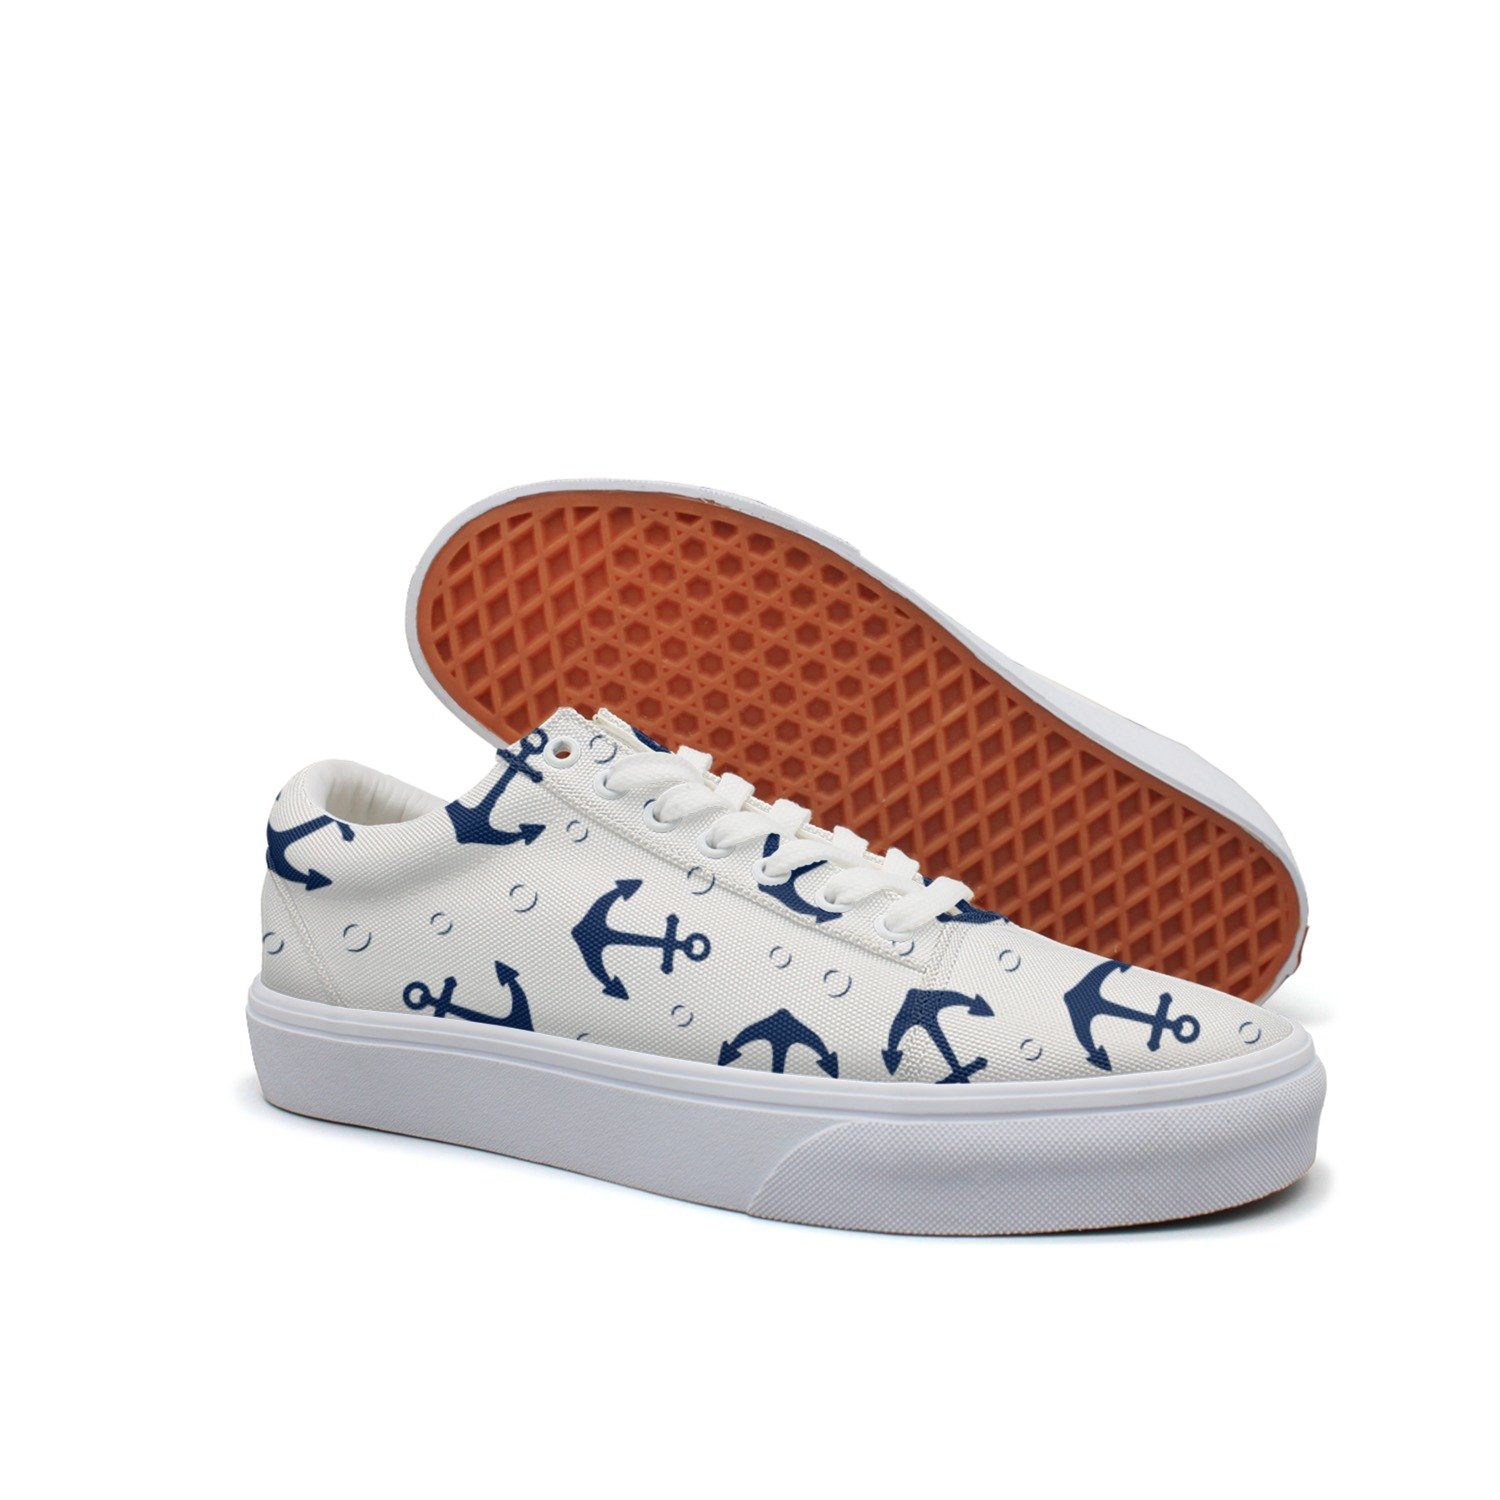 VCERTHDF Print Trendy Anchor Marine Pattern Low Top Canvas Sneakers